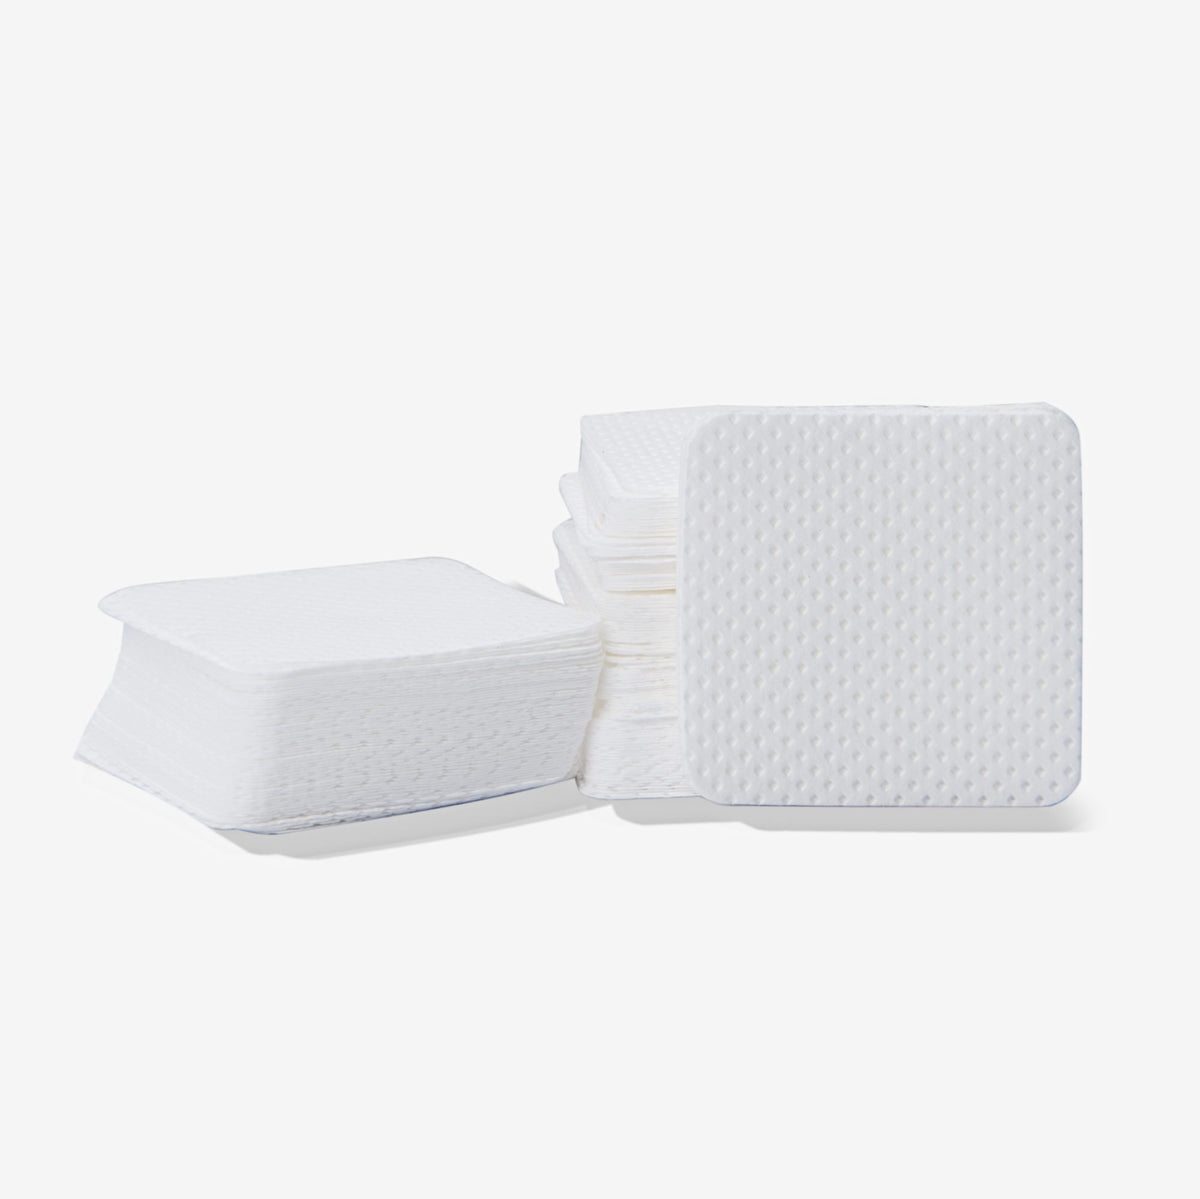 ADHESIVE WIPES-LashBox LA Australia